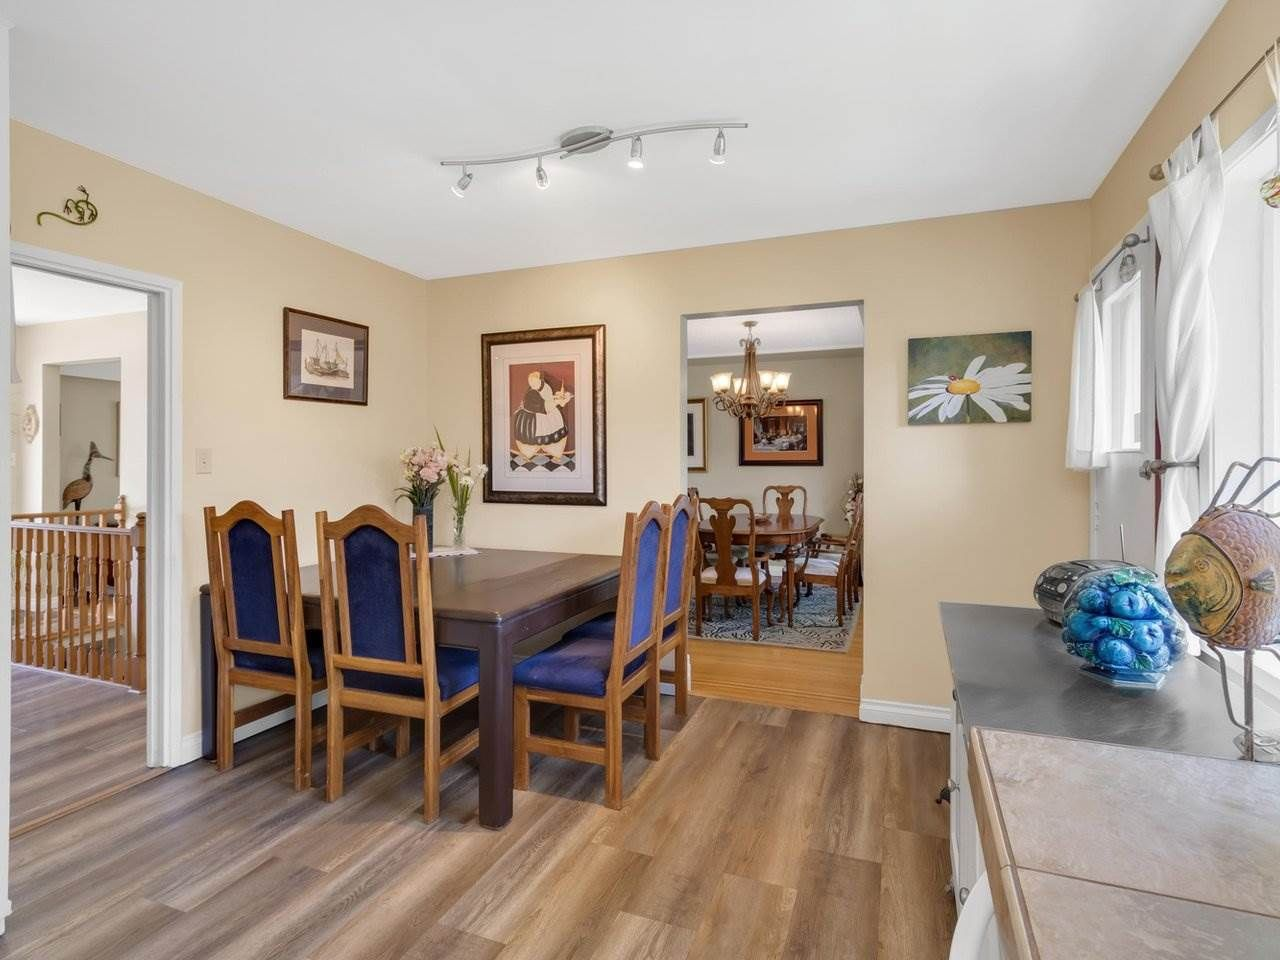 Photo 5: Photos: 943 GATENSBURY Street in Coquitlam: Harbour Chines House for sale : MLS®# R2499202